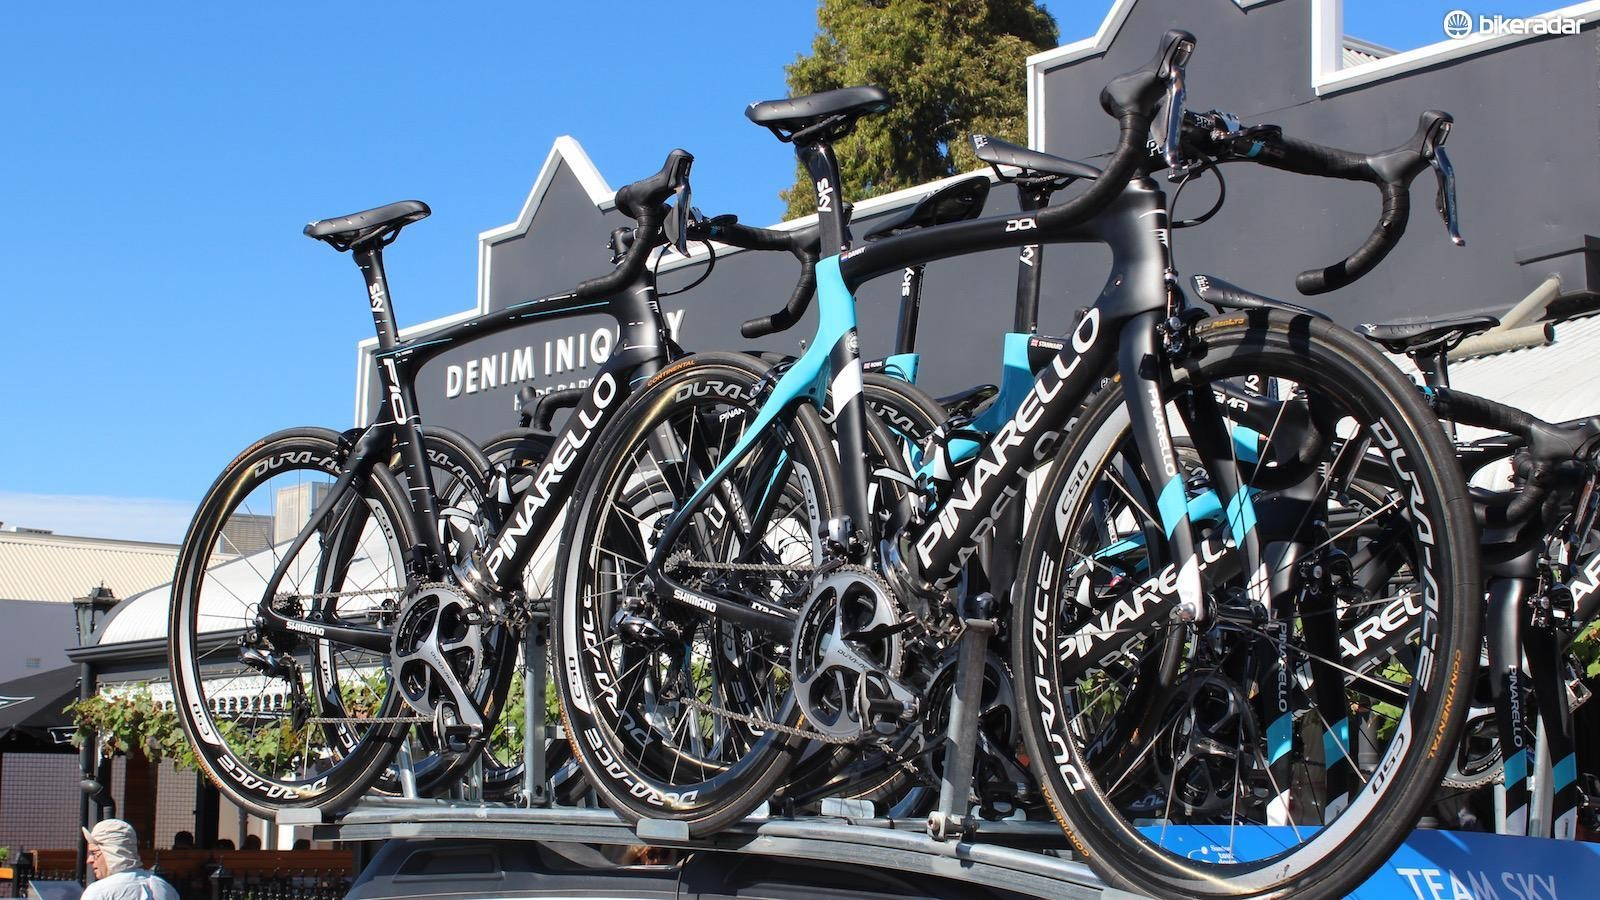 Some of Team Sky's spare race bikes are last year's Pinarello Dogma F8s